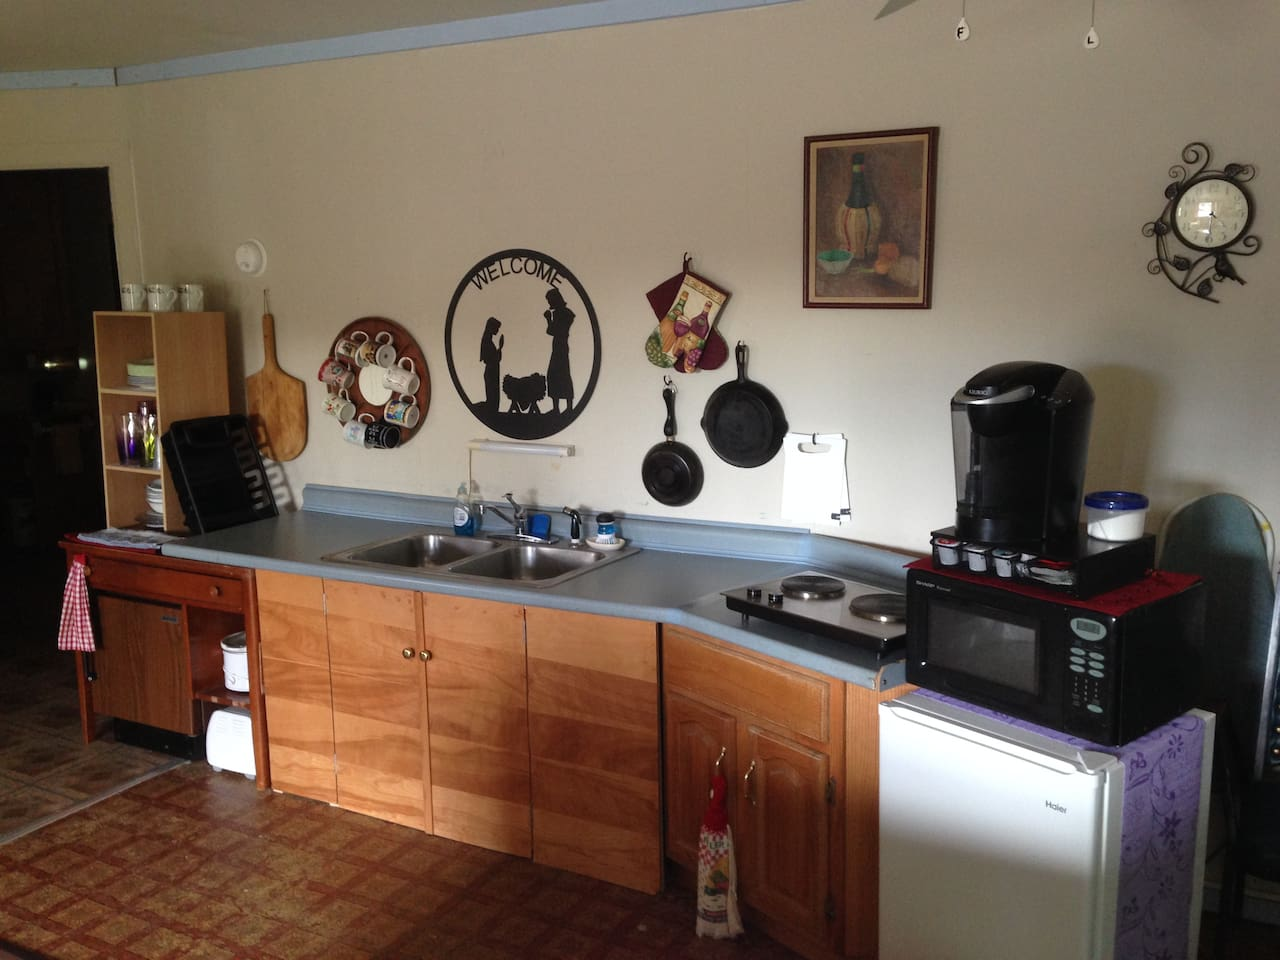 Kitchenette with counter cooktop, microwave, Keurig coffee maker,  toaster over, utensils and more.